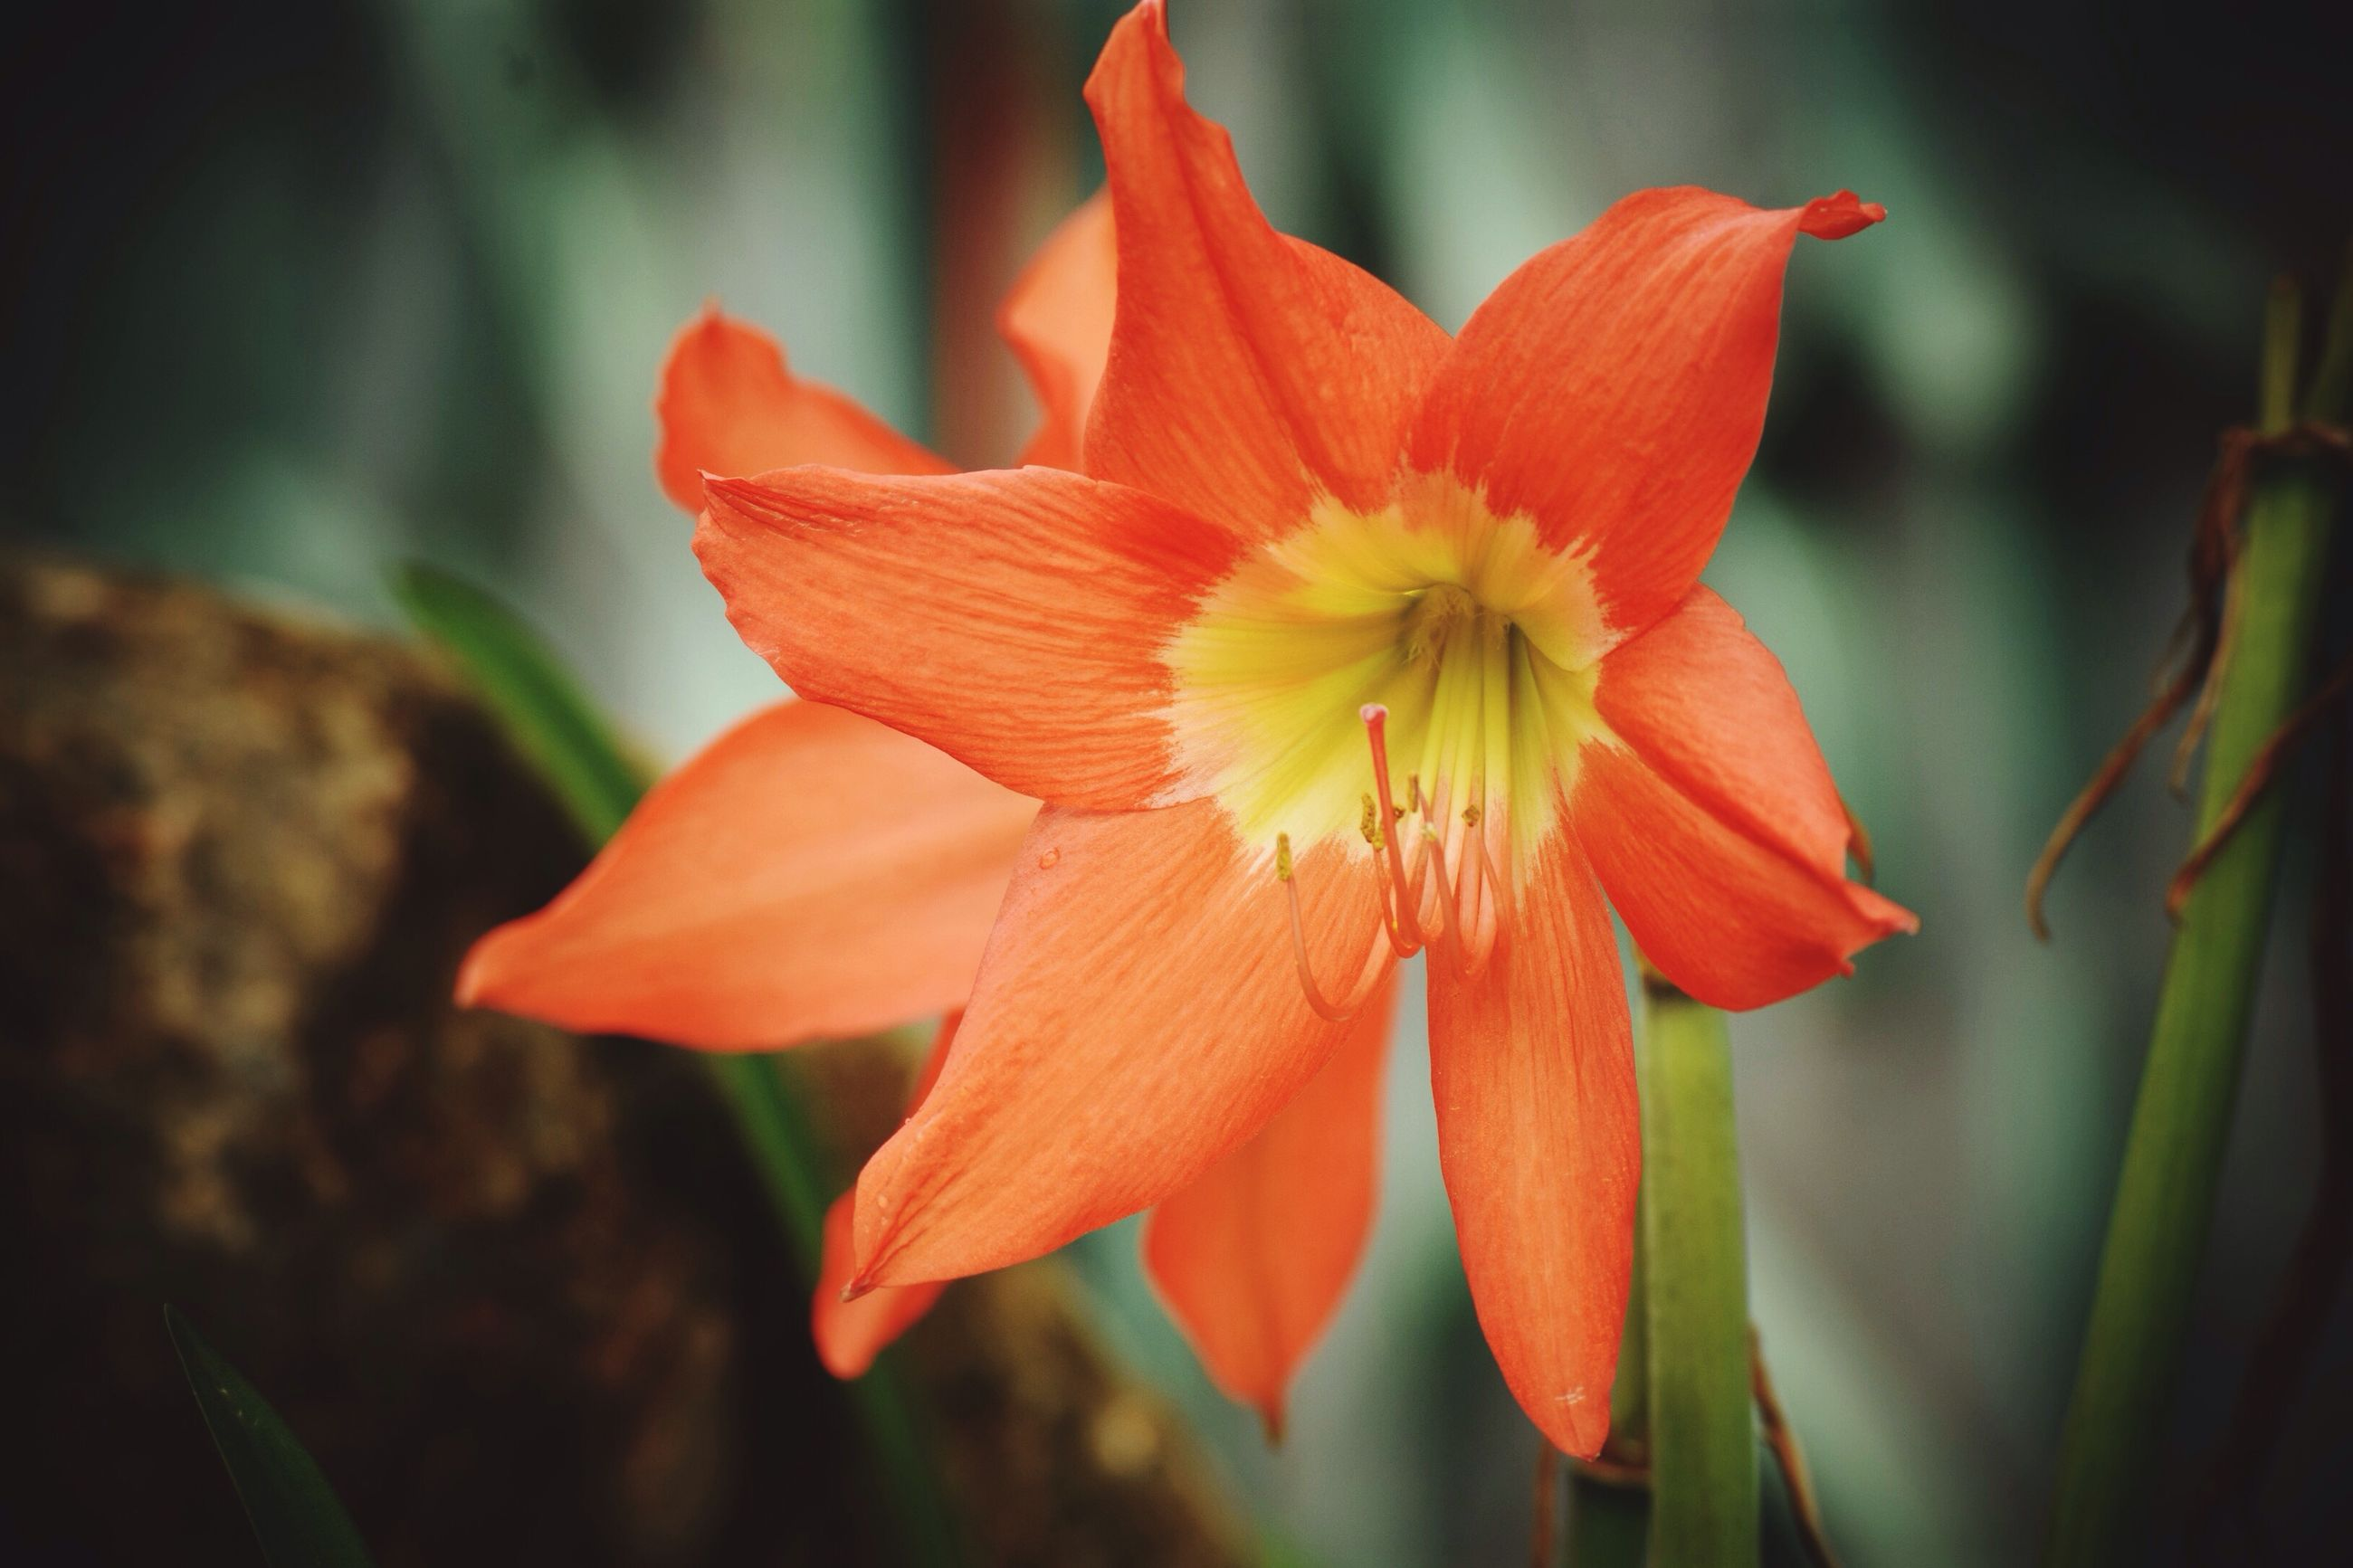 CLOSE-UP OF ORANGE DAY LILY BLOOMING